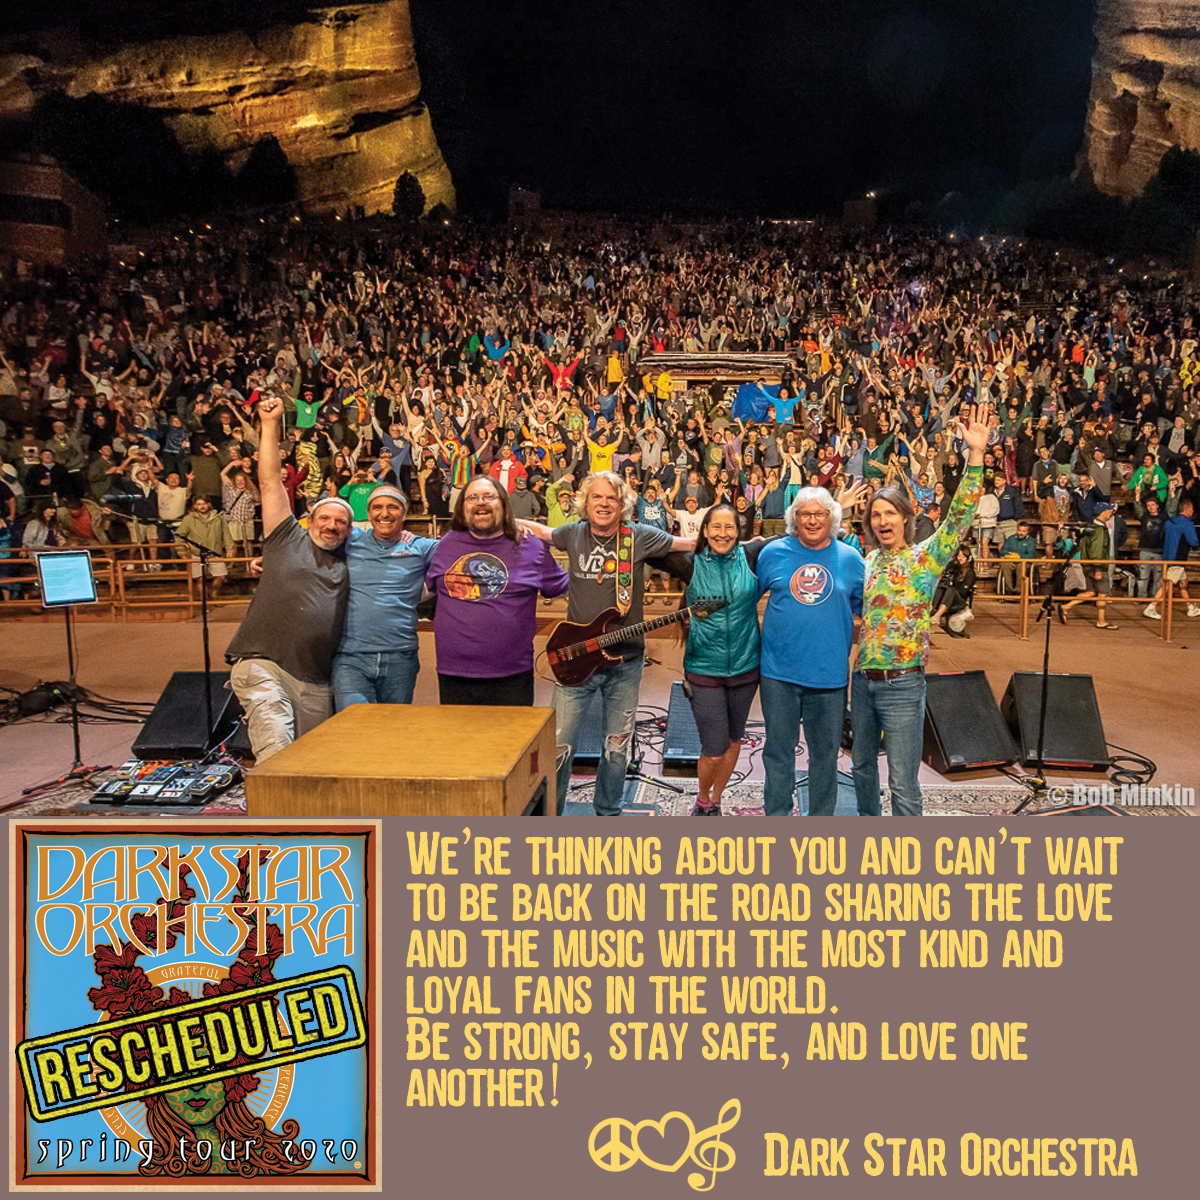 Dark Star Orchestra Postpones Spring Tour, Reschedules Dates